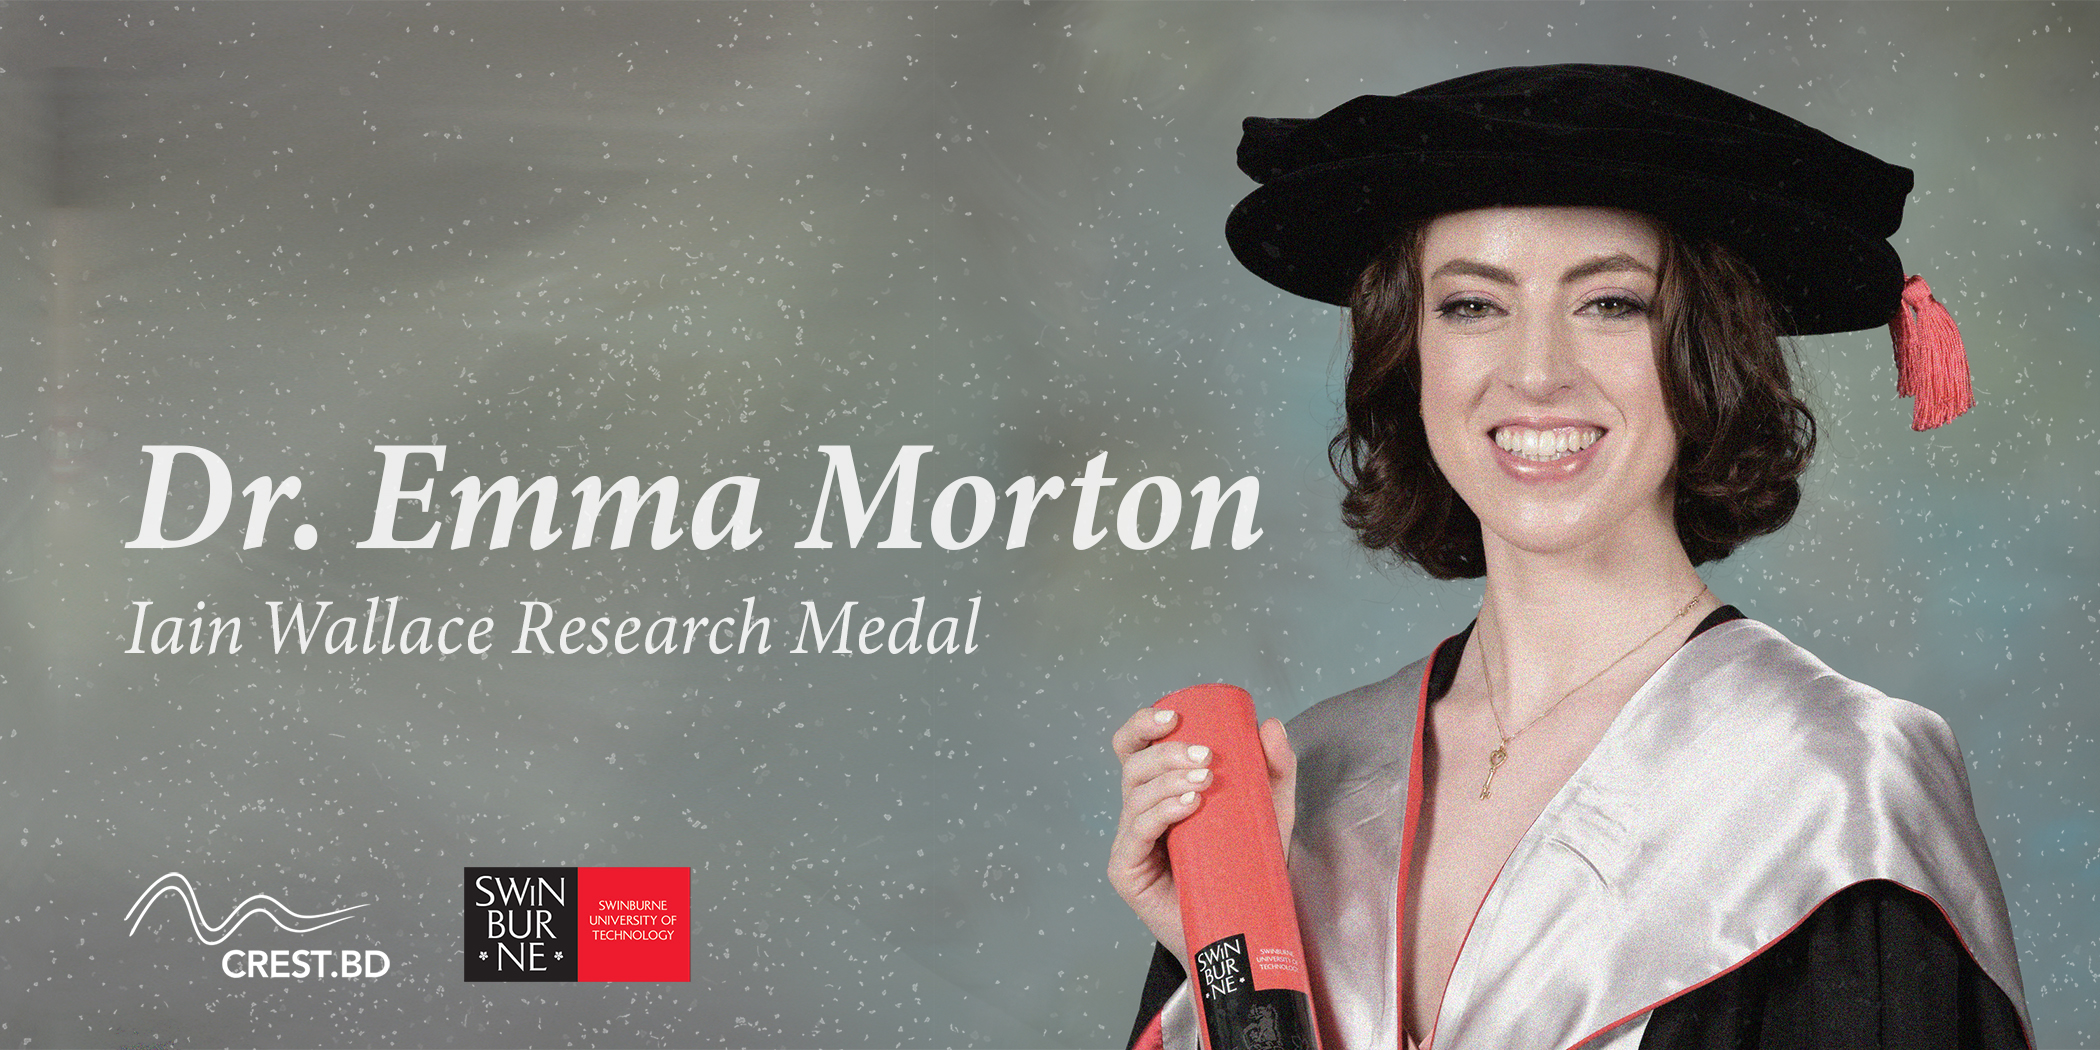 Dr. Emma Morton awarded Iain Wallace Research Medal